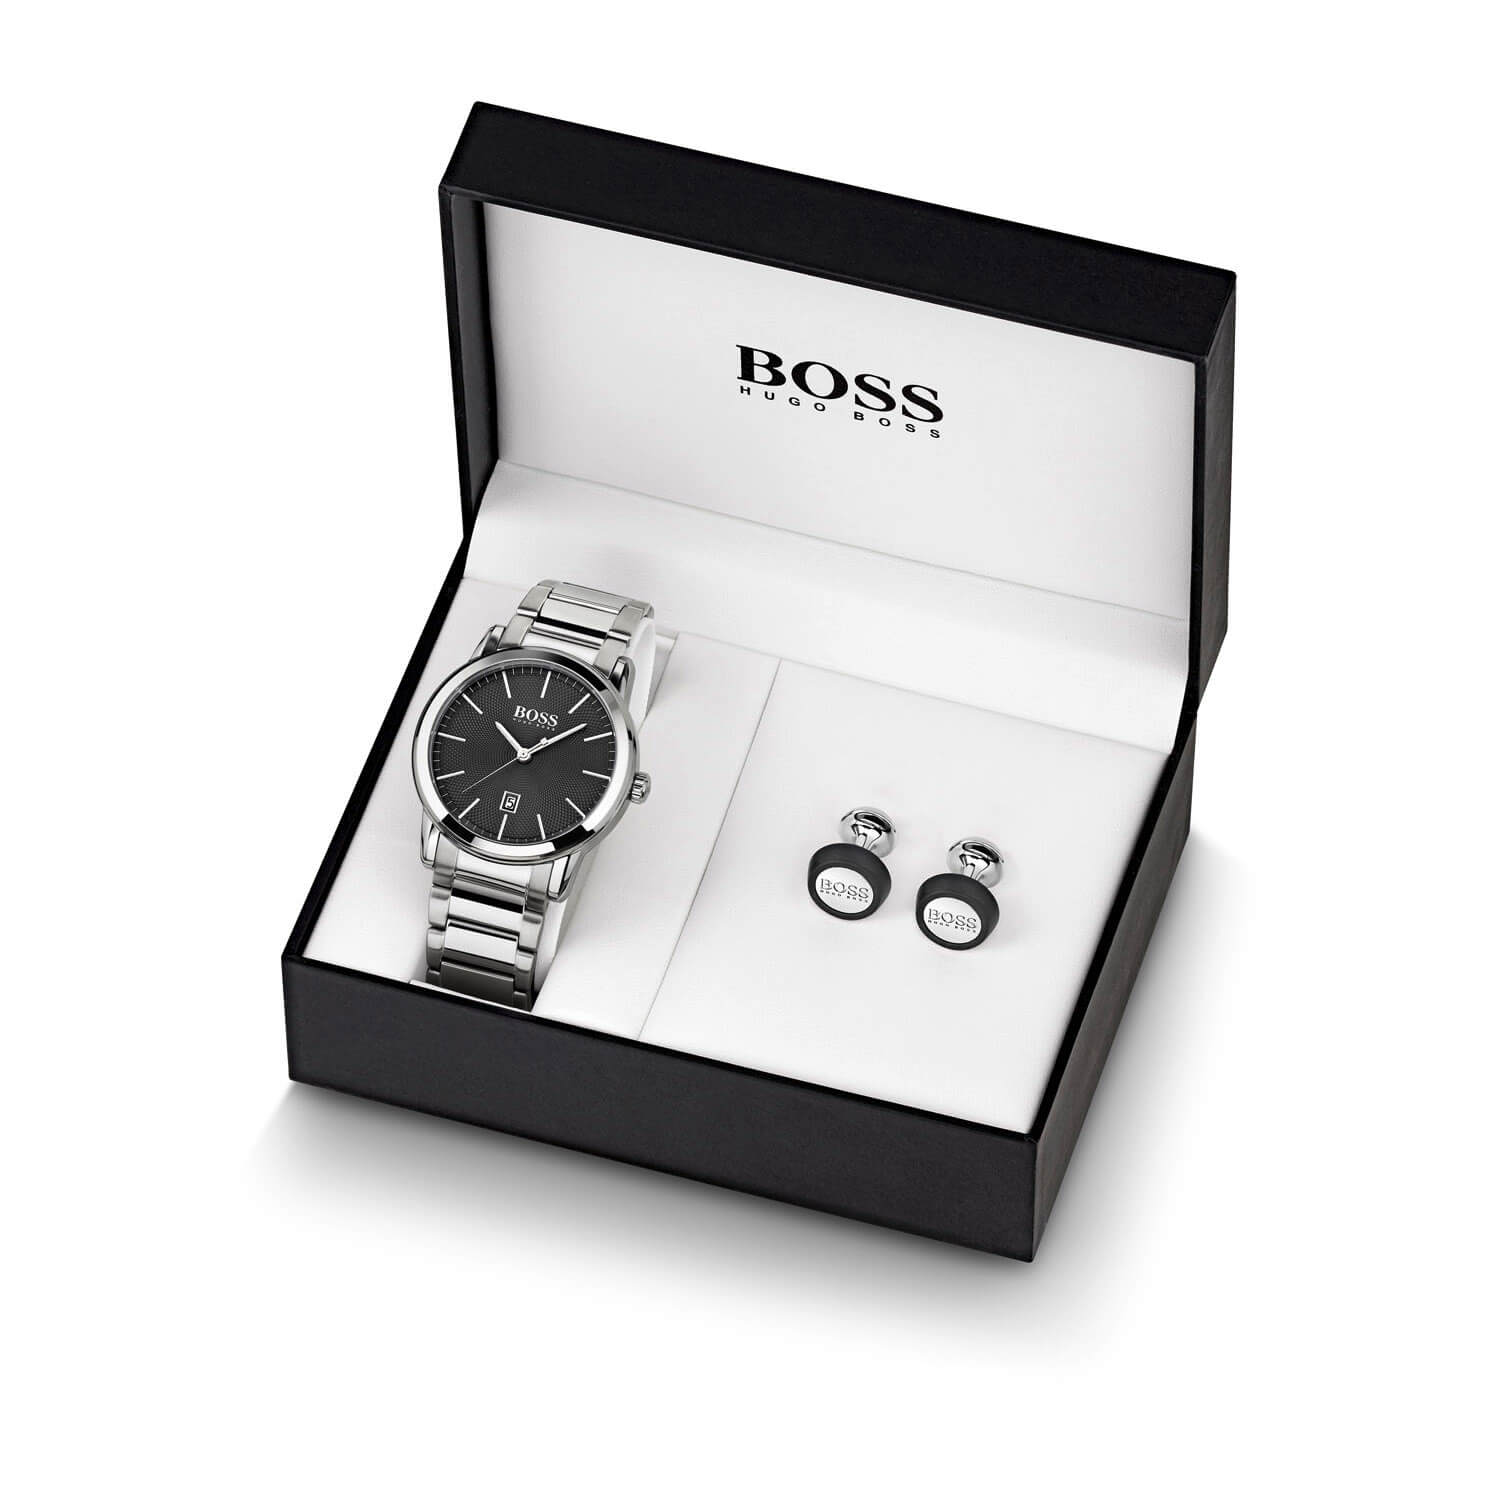 Hugo Boss Black Dial & Stainless Steel Bracelet Watch & Cufflinks Gift Set